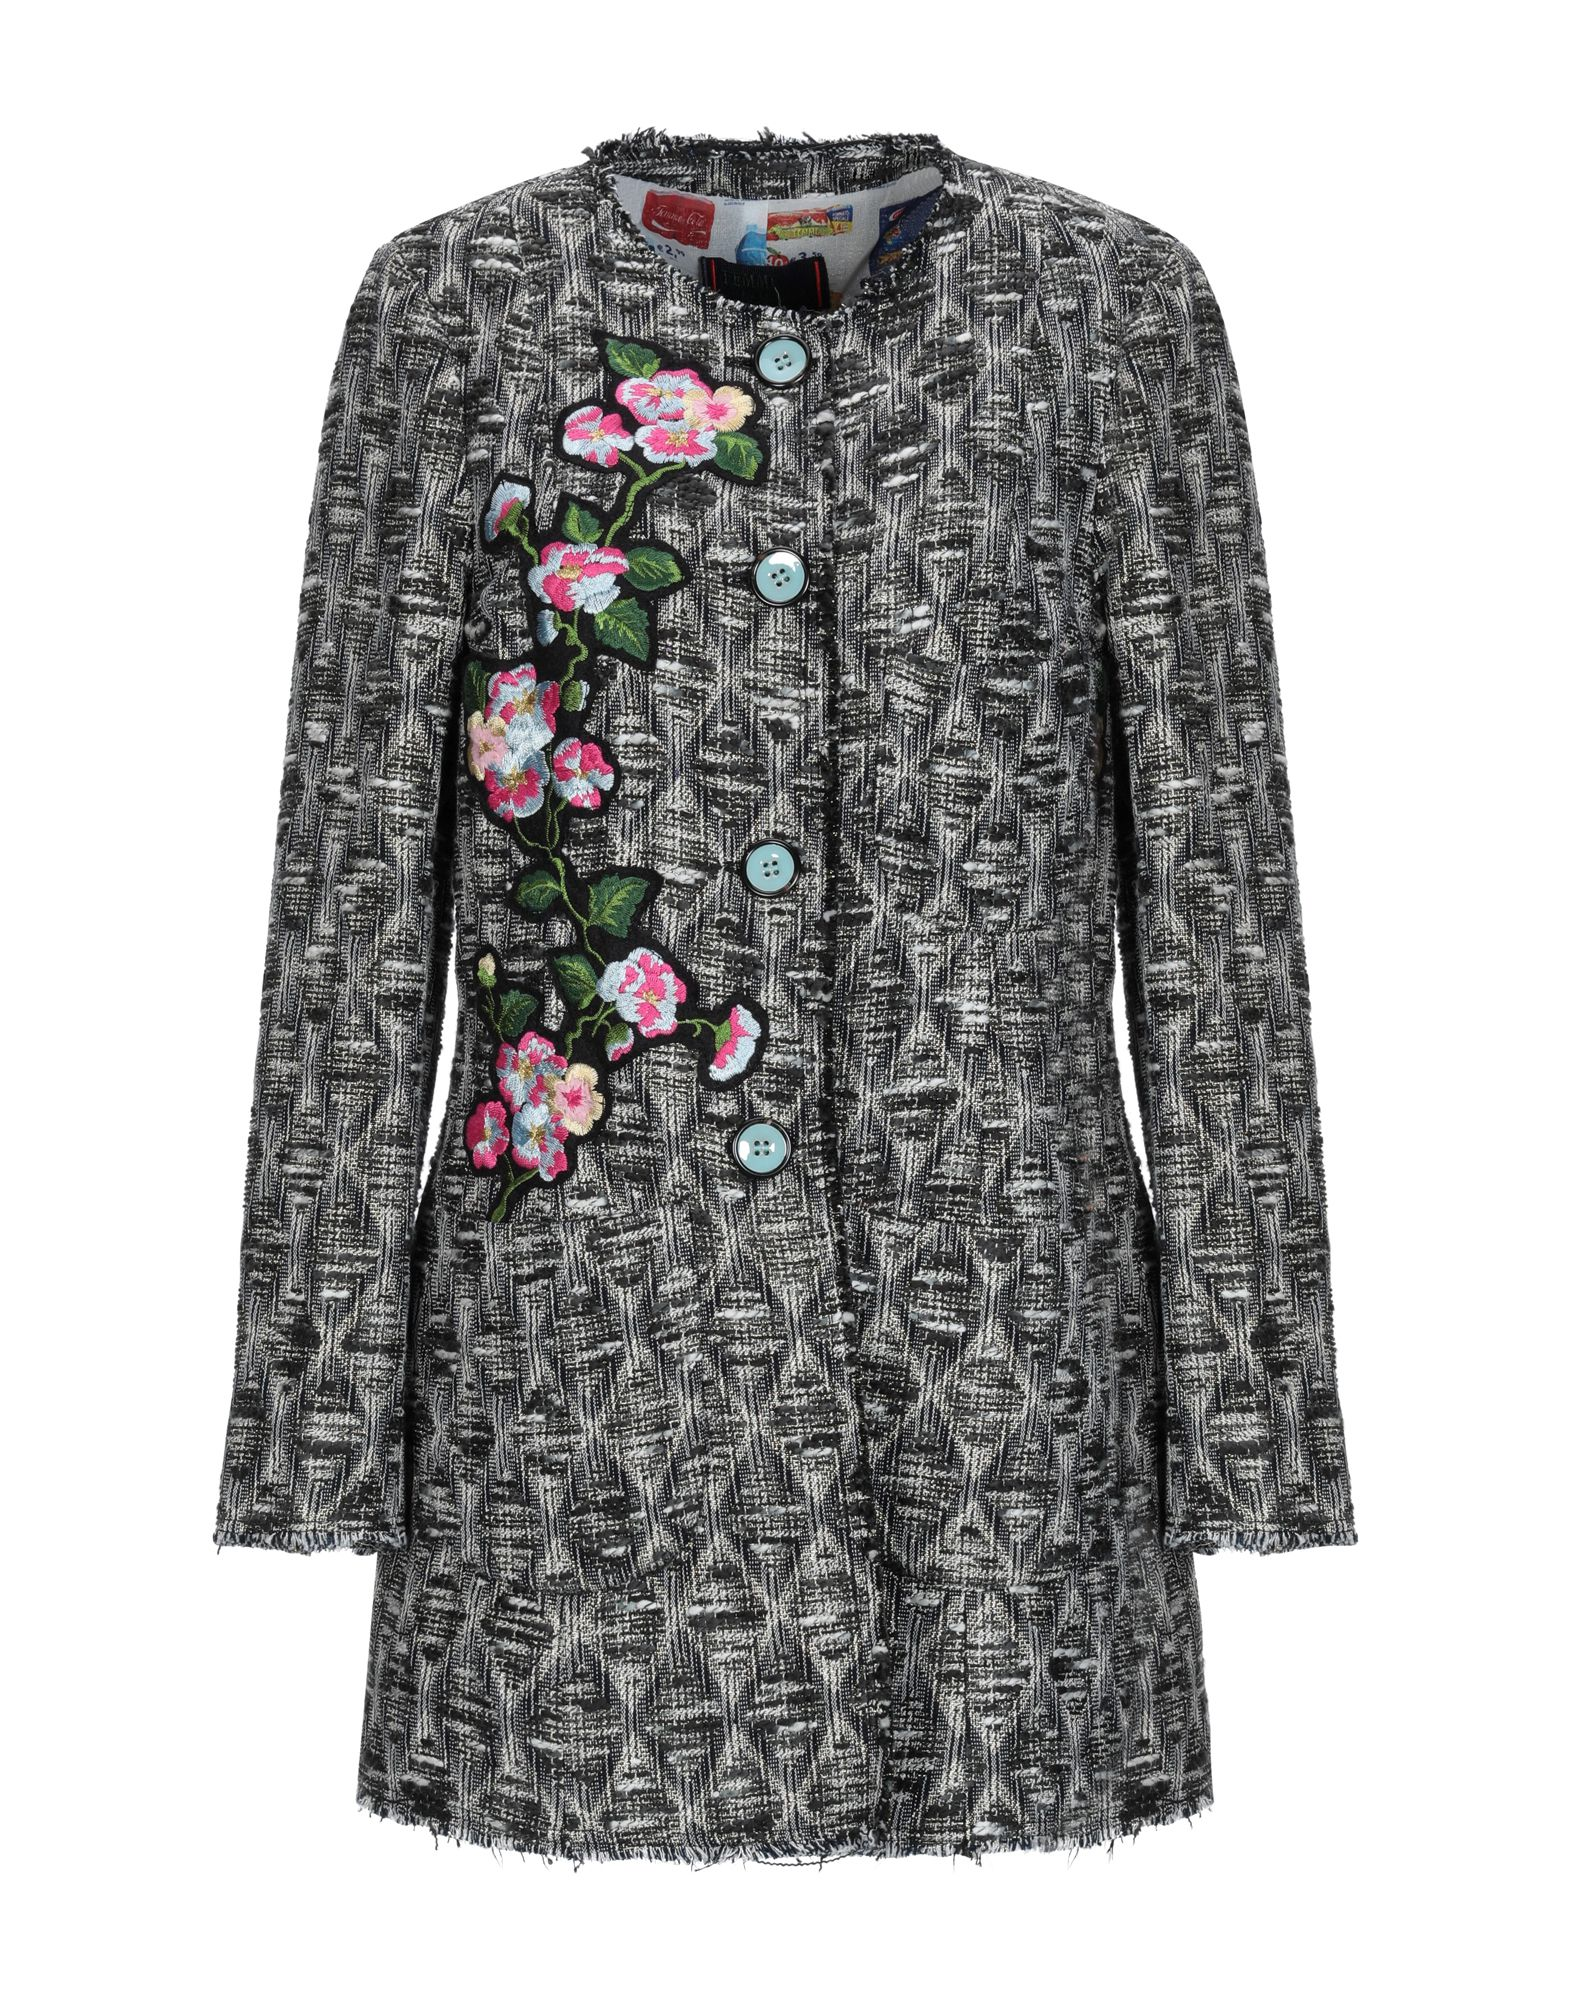 FEMME by MICHELE ROSSI Coats - Item 49437242